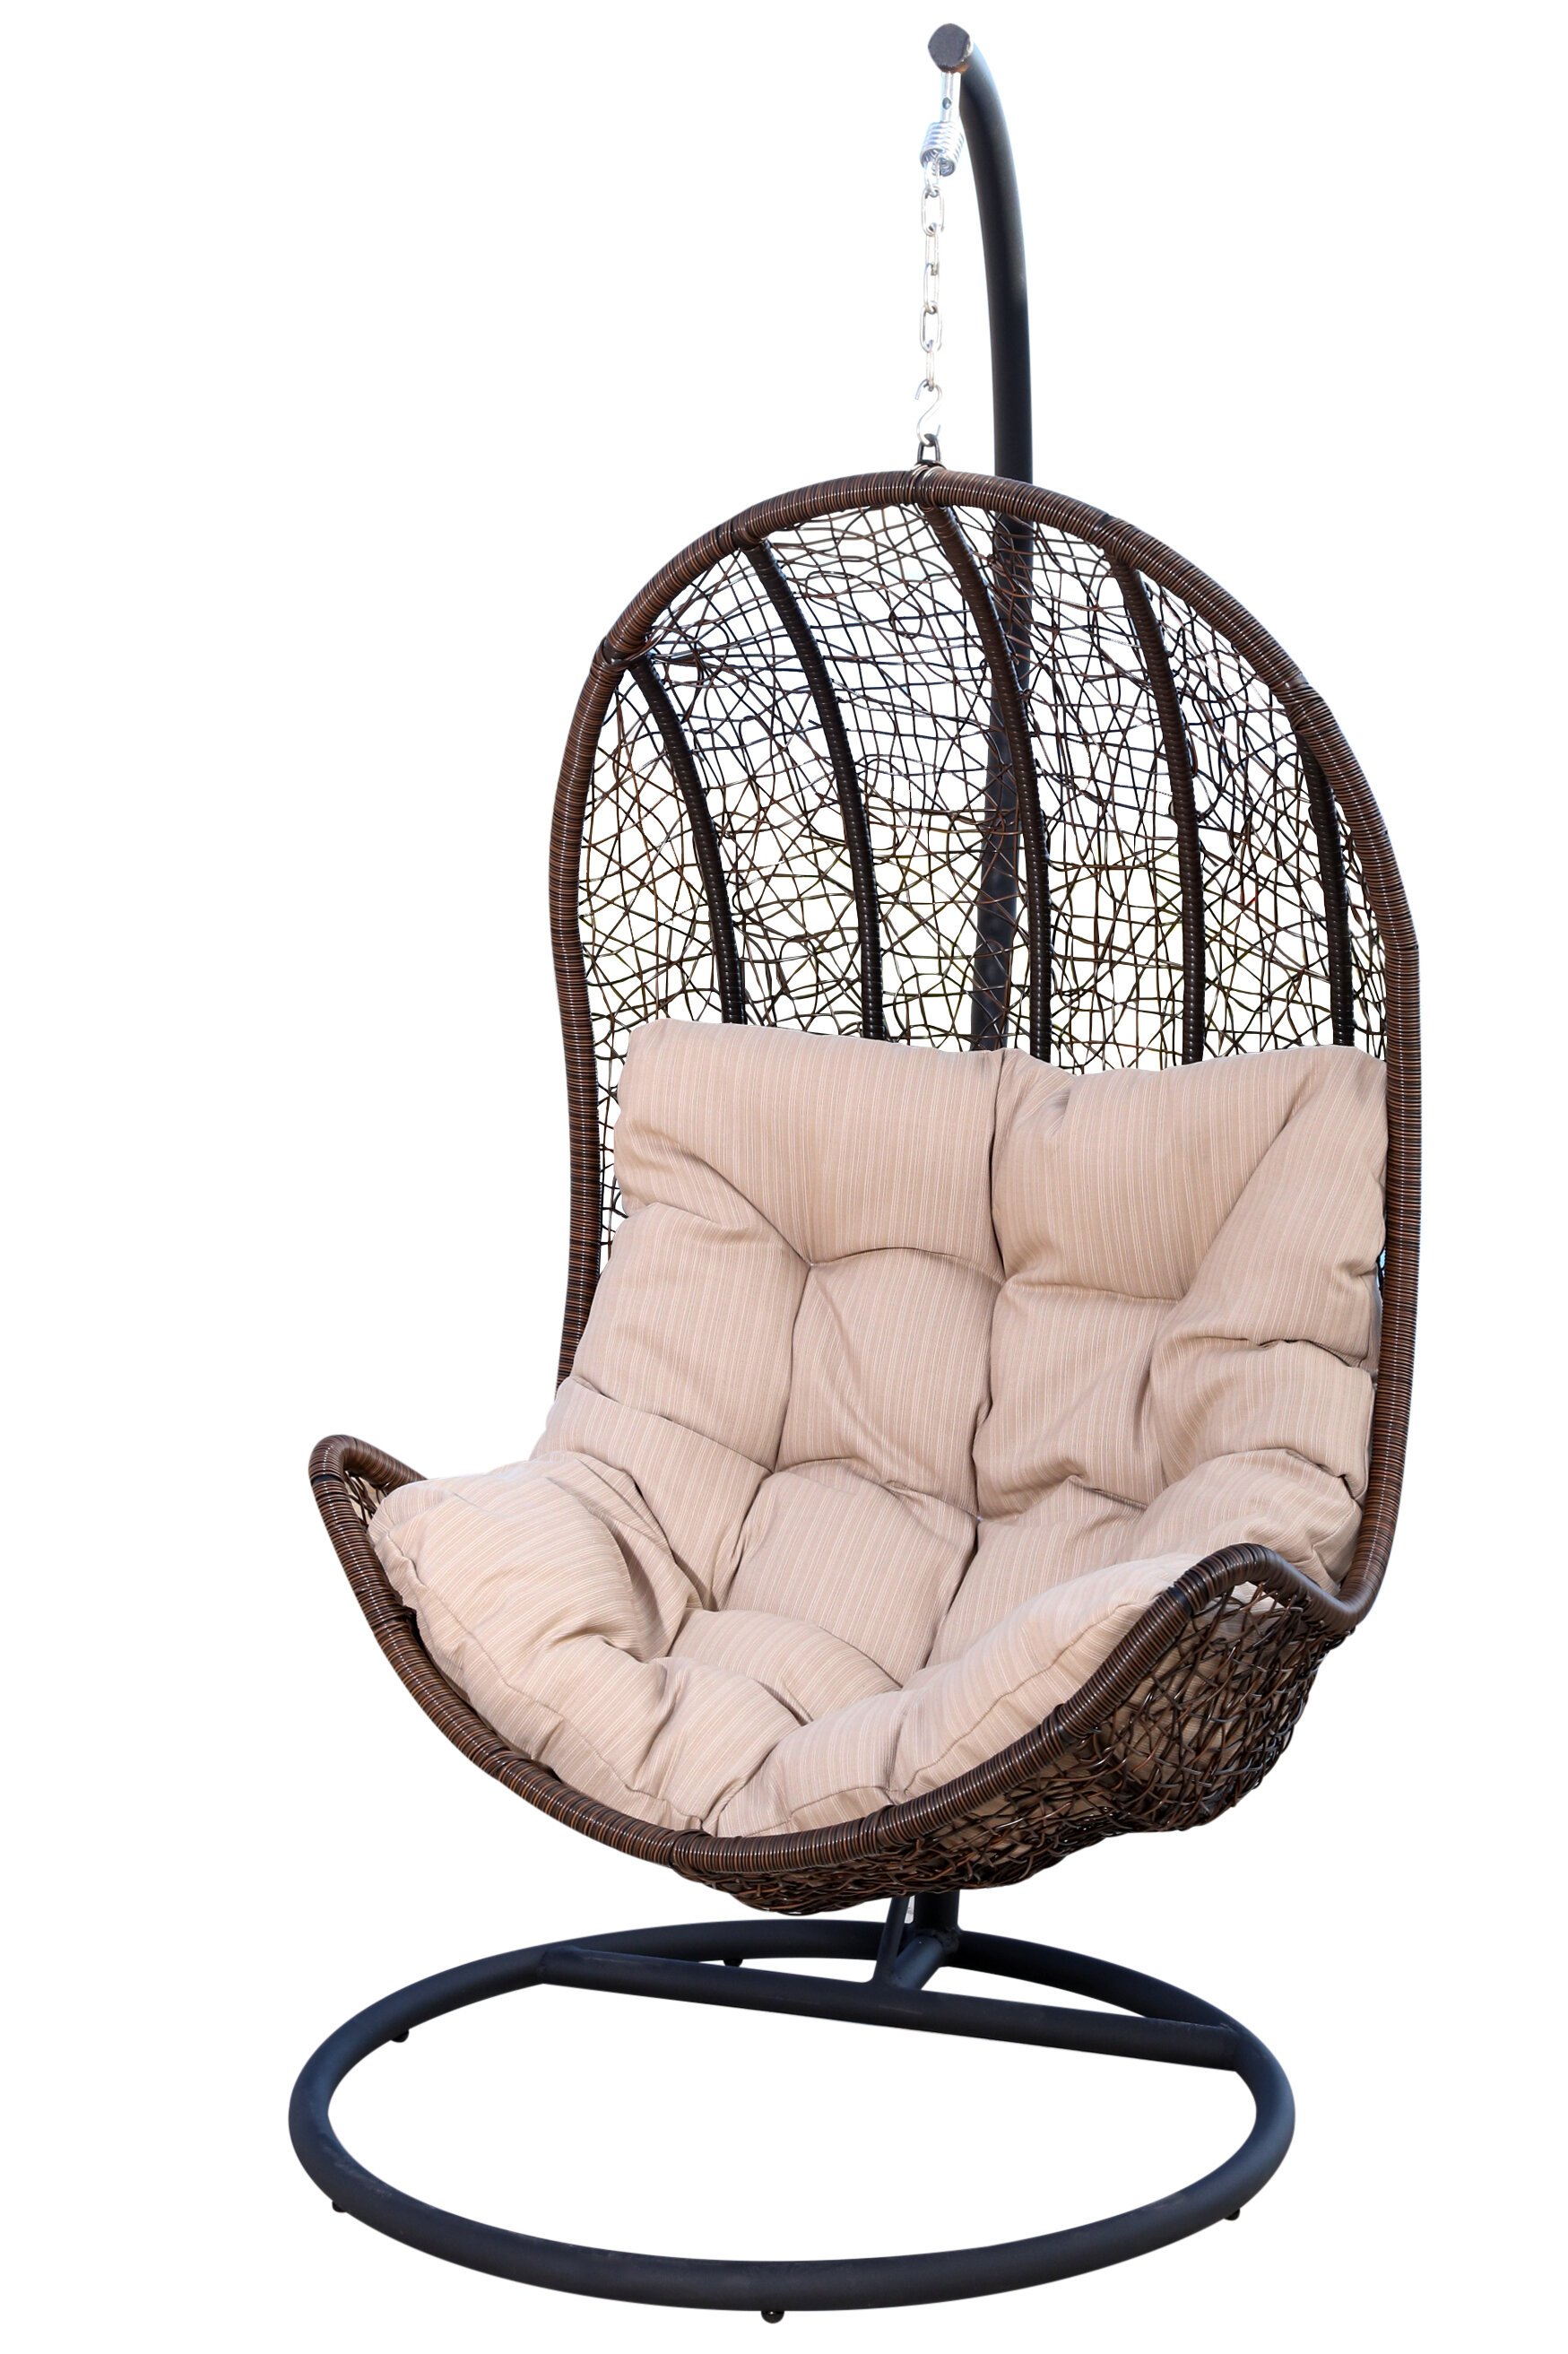 Ordinaire World Menagerie Ghazali Eggshaped Swing Chair With Stand U0026 Reviews | Wayfair